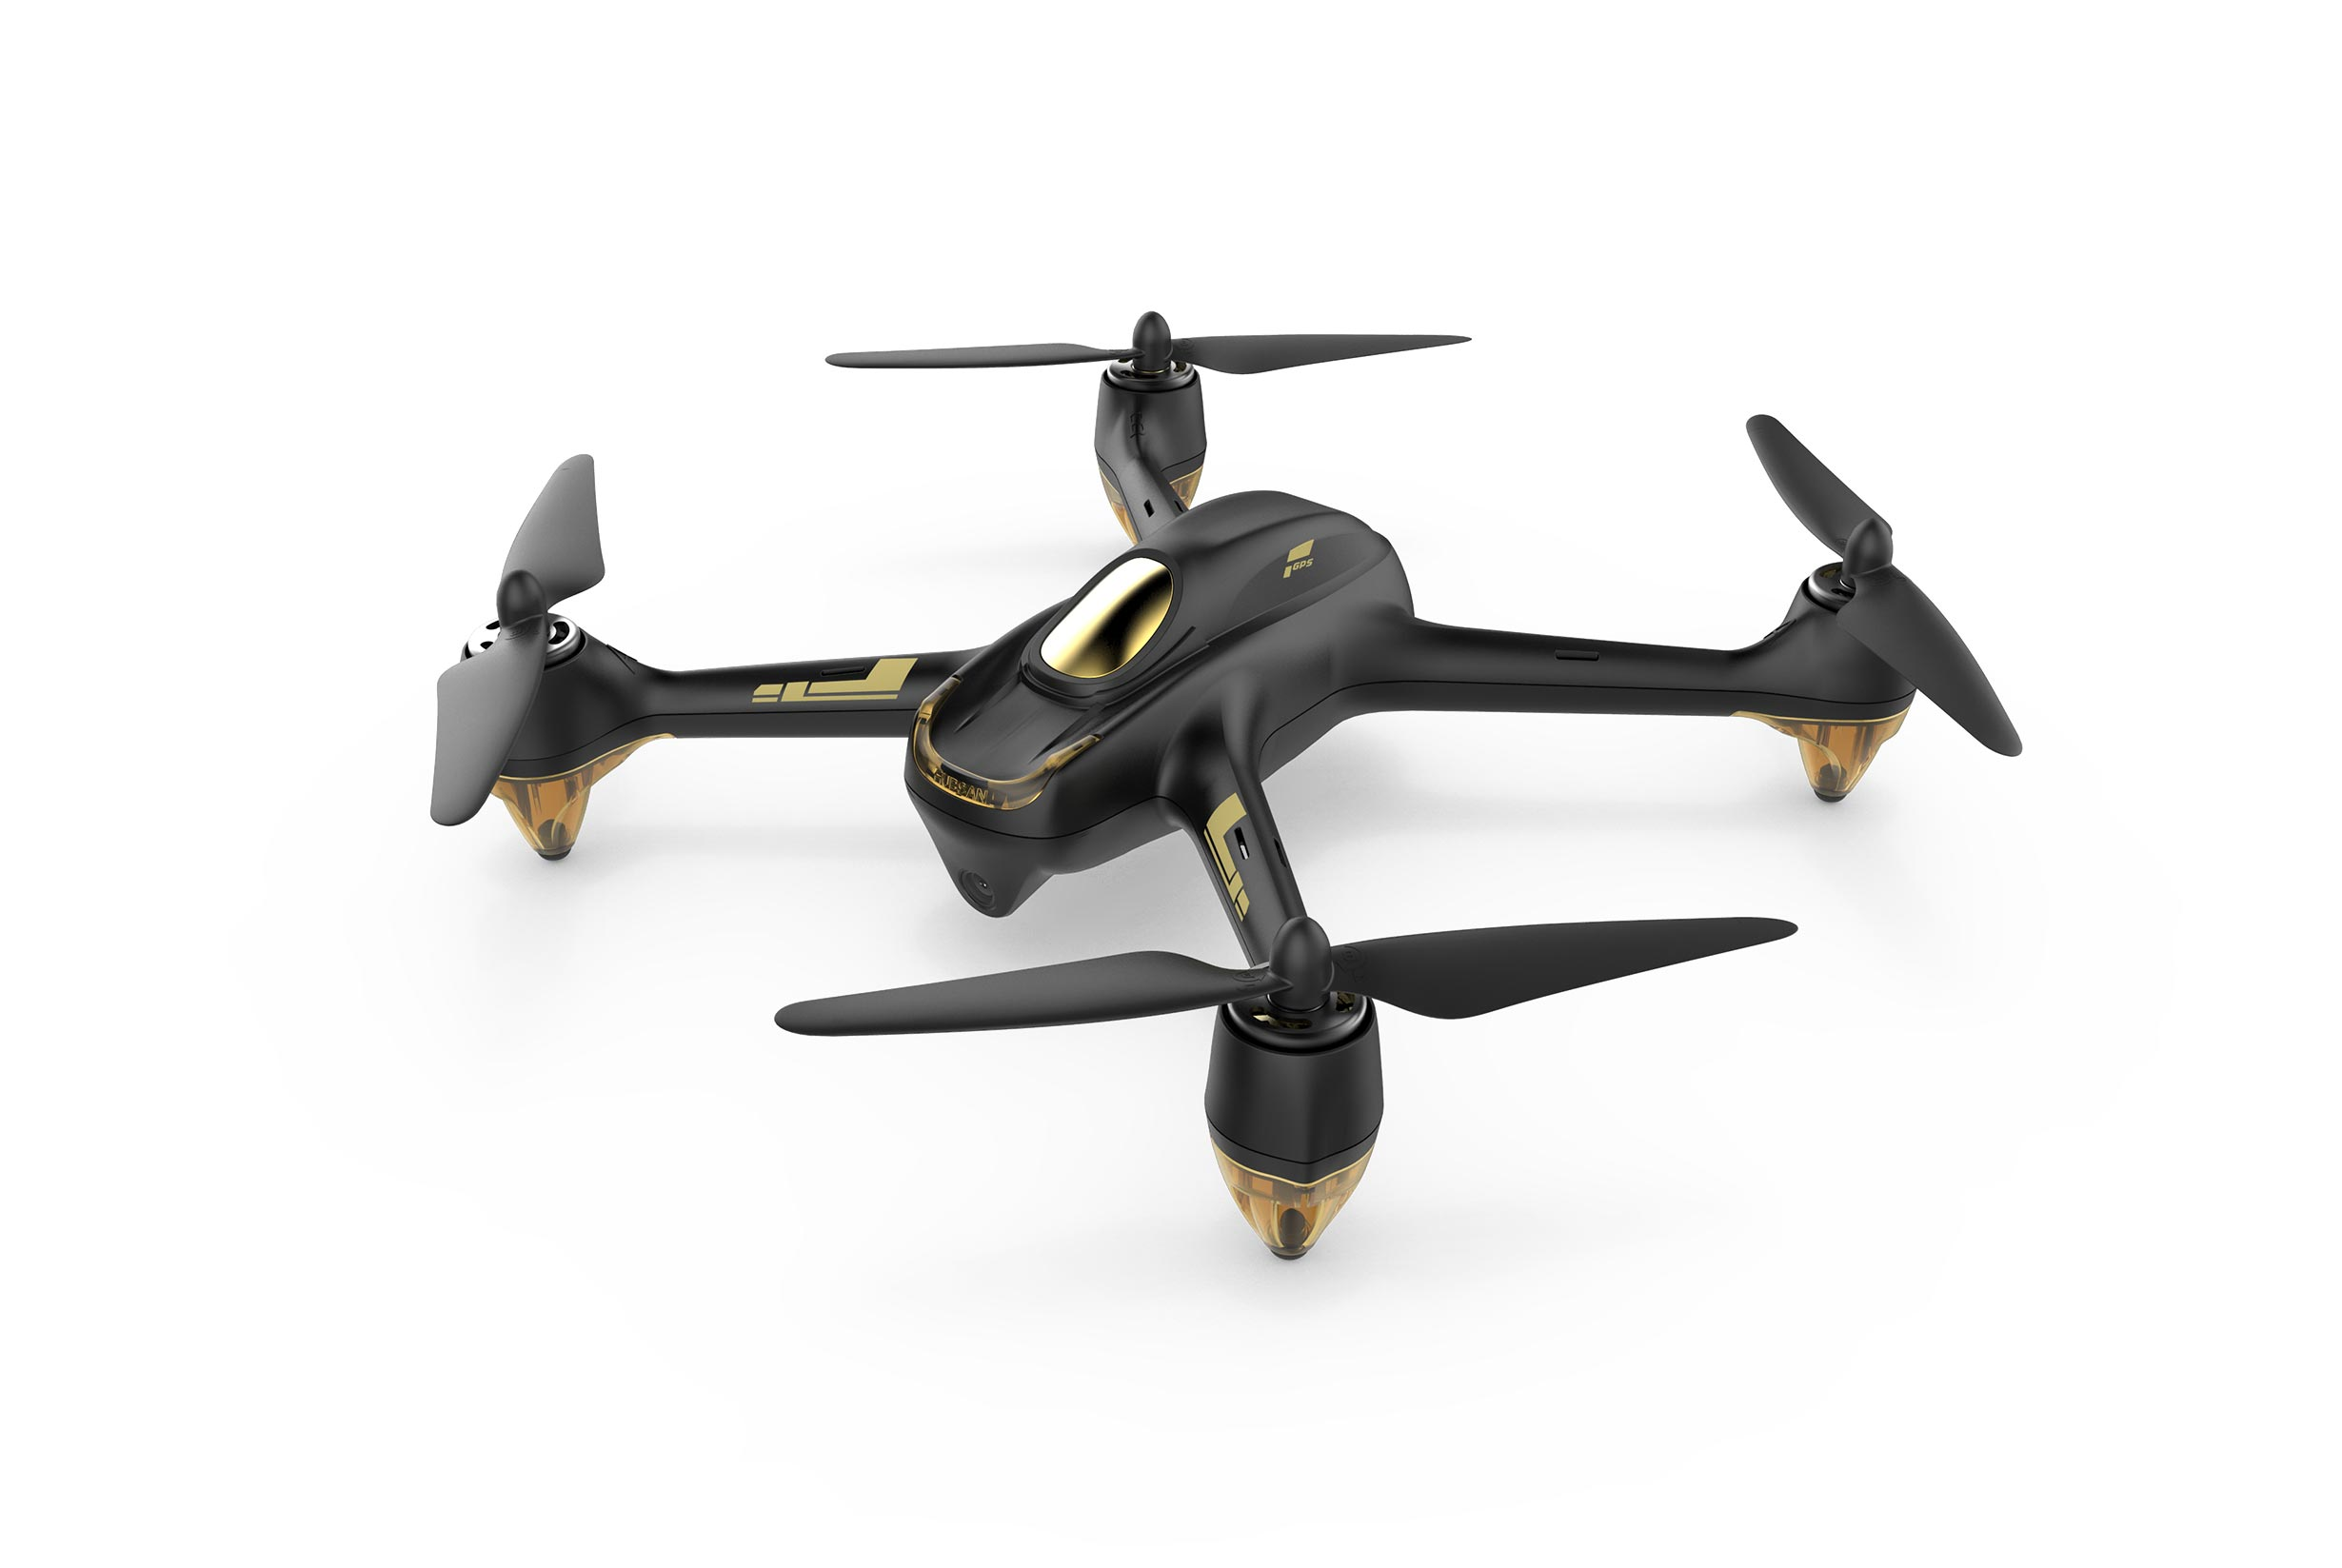 Hubsan H501S X4 Air 4 Channel GPS 5 8G FPV Brushless with 1080P HD